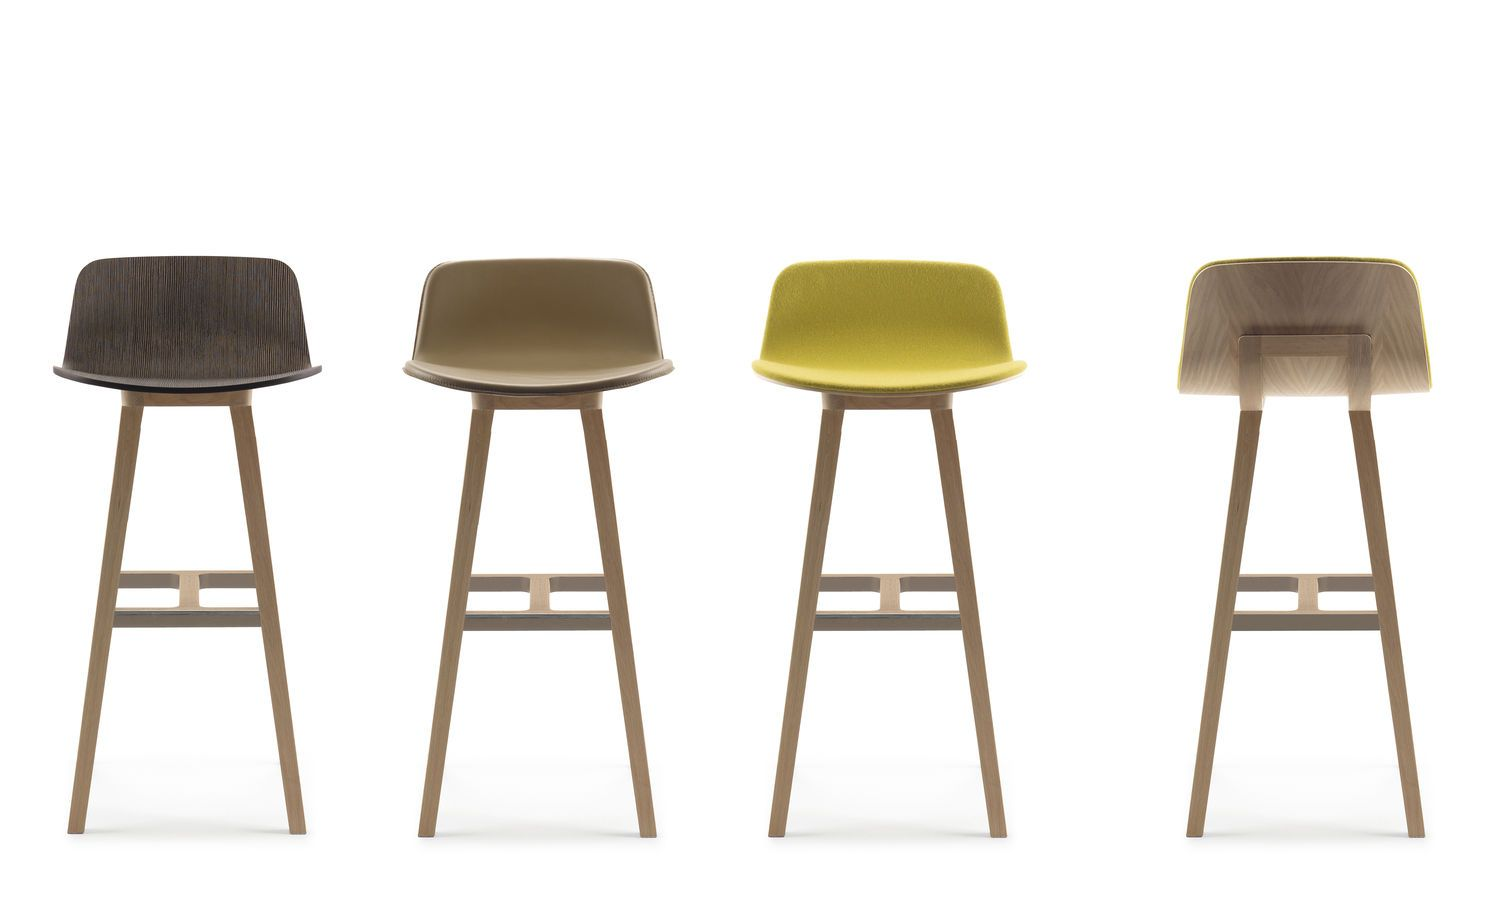 Alki Chaises Minimalist Design Bar Stool Kuskoa By Jean Louis Iratzoki Alki